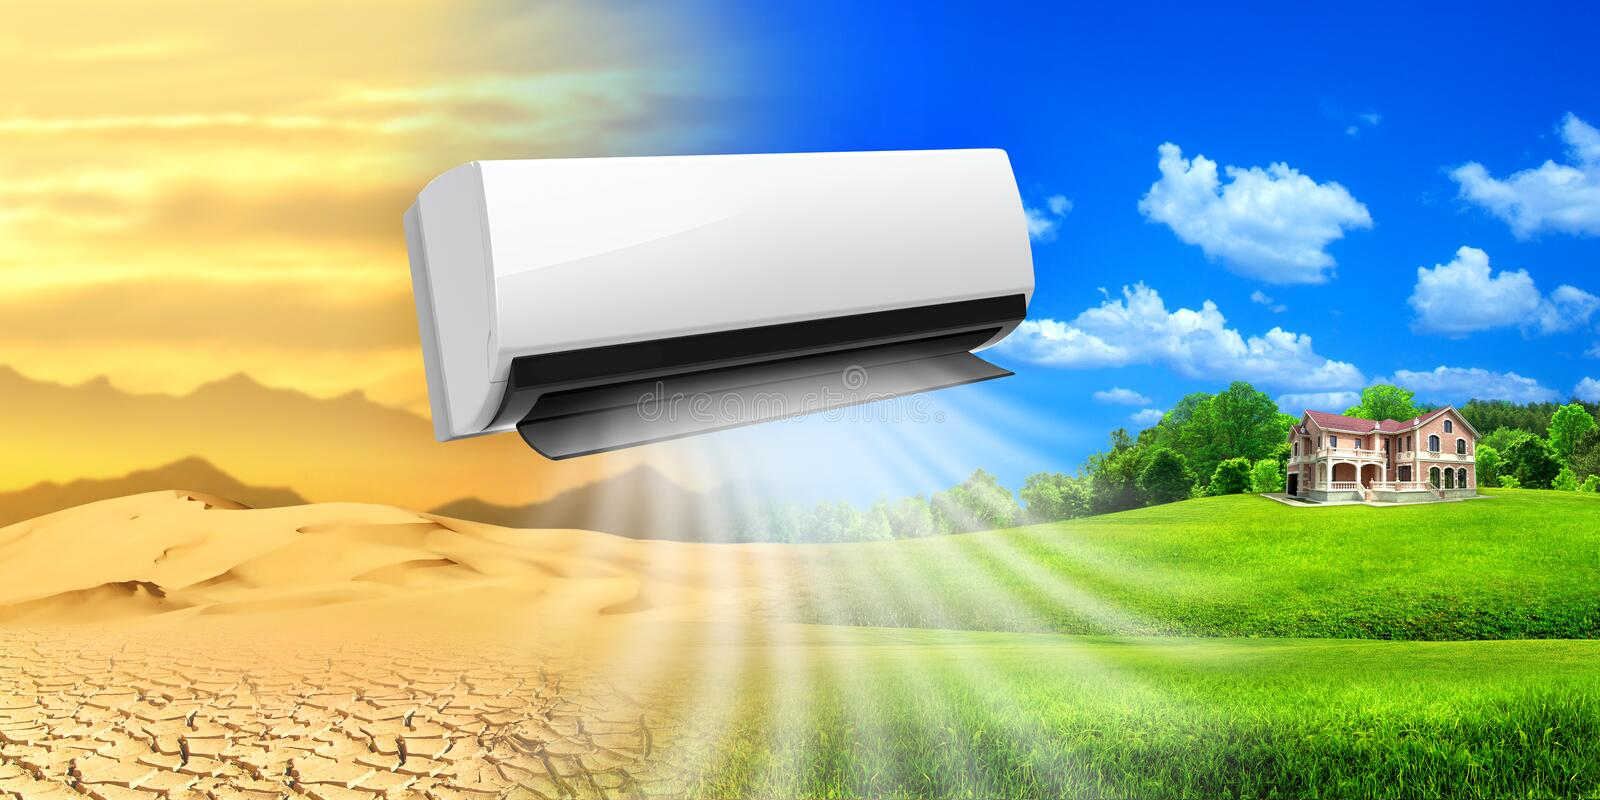 Air conditioner. Comfortable life. The desert turns into an oasis. Proportion for a billboard 3Ñ…6, high quality royalty free stock photo